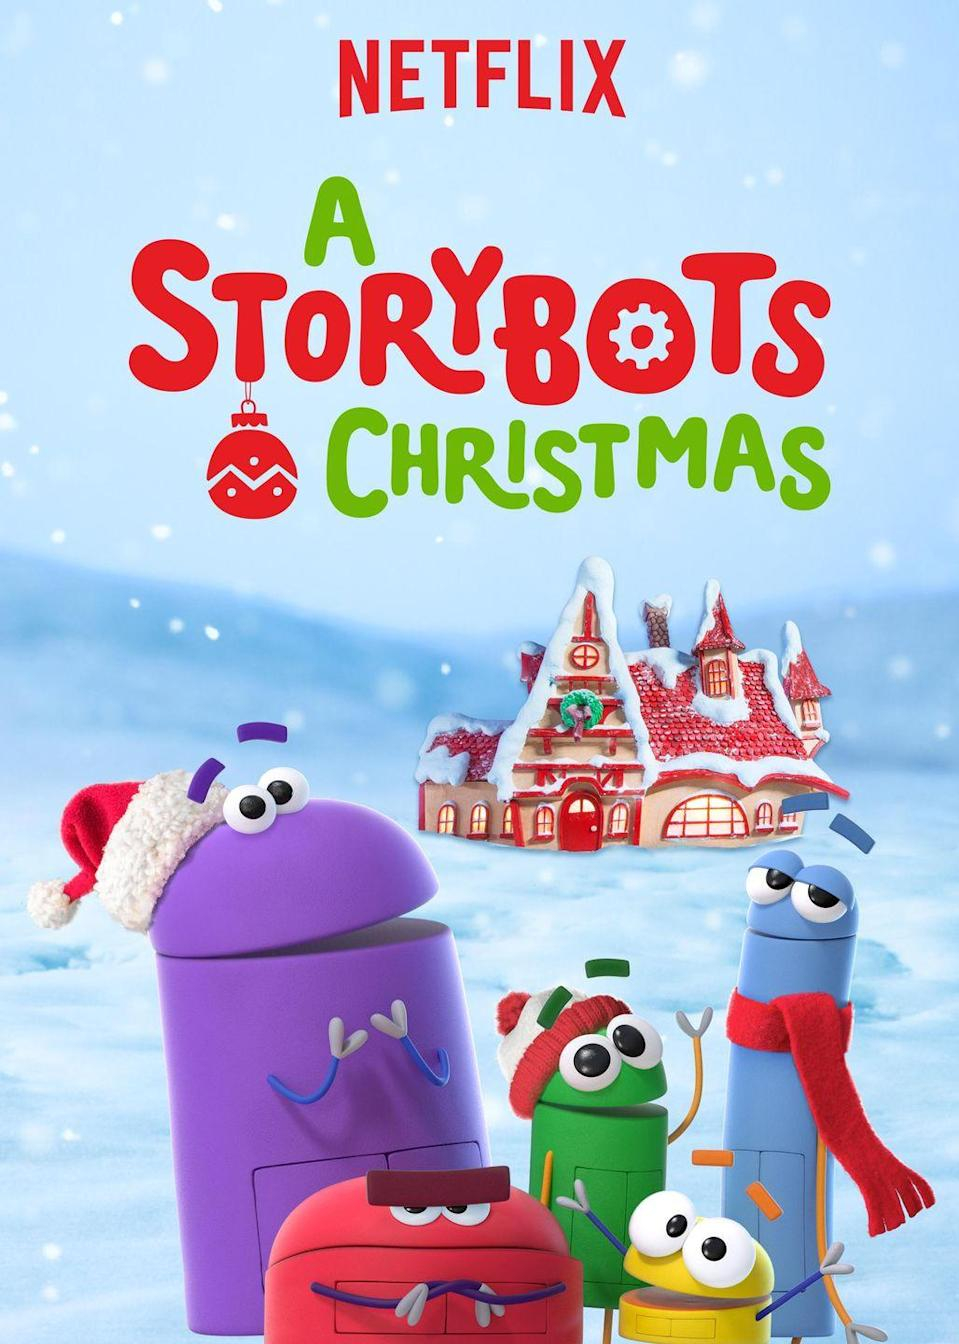 """<p>Bo asks for Santa's help when she thinks her friends don't like her gifts, and learns that Christmas is about much more than presents.</p><p><a class=""""link rapid-noclick-resp"""" href=""""https://www.netflix.com/title/80158854"""" rel=""""nofollow noopener"""" target=""""_blank"""" data-ylk=""""slk:STREAM NOW"""">STREAM NOW</a></p>"""